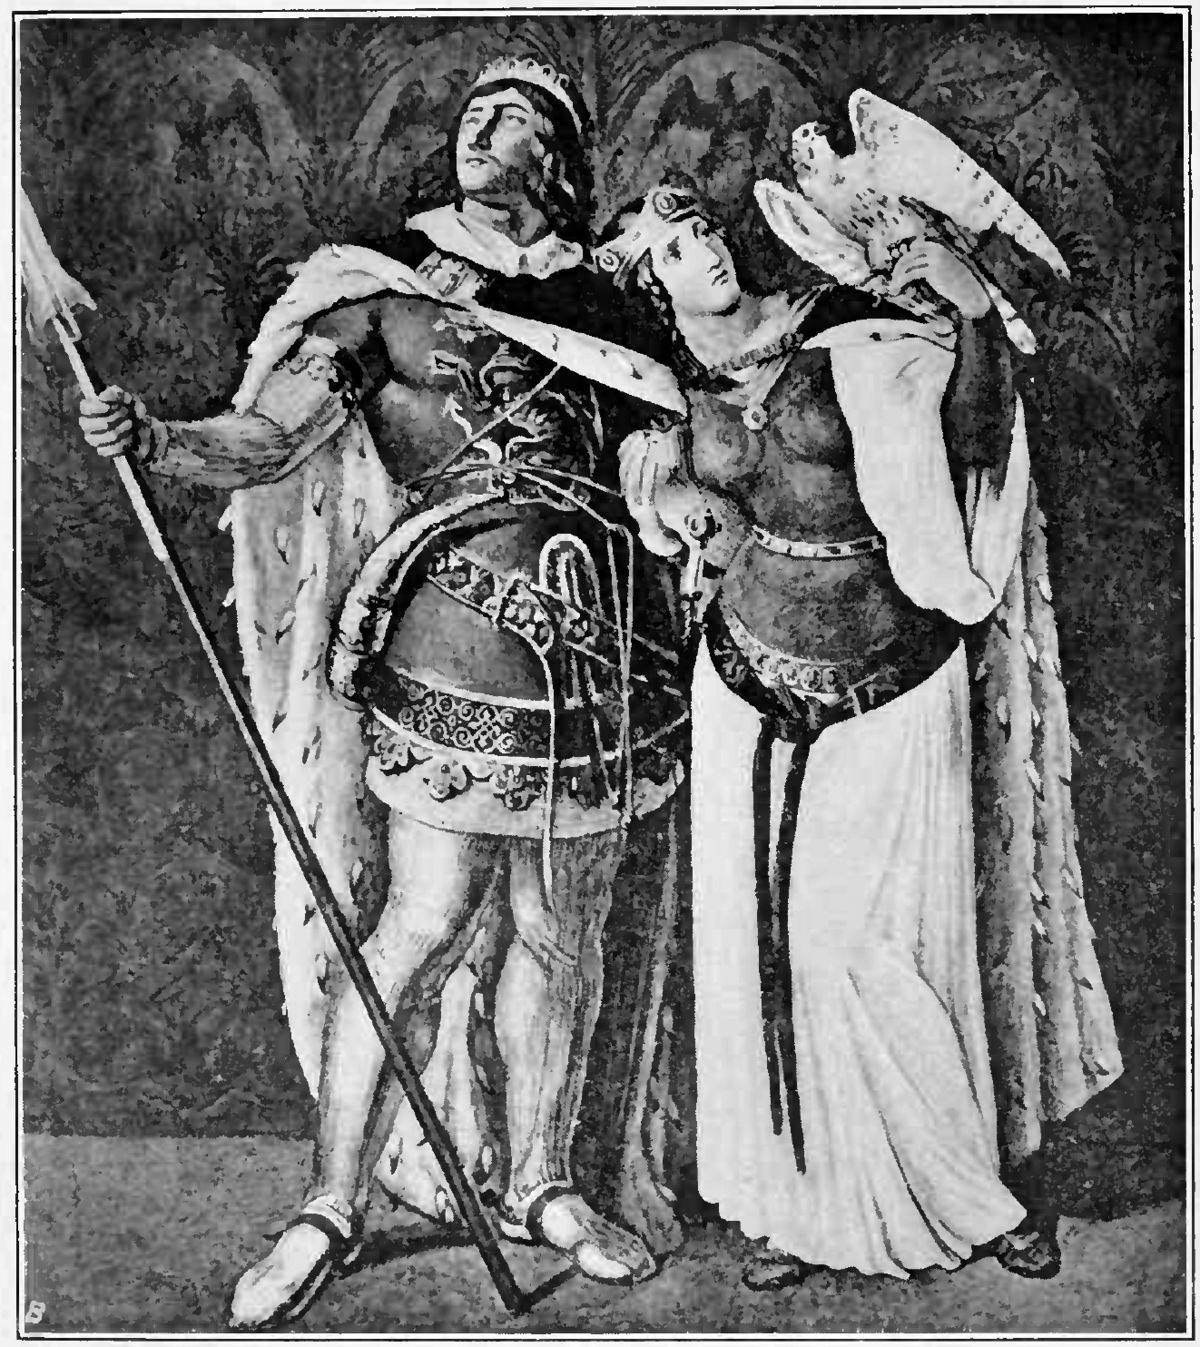 File:Siegfried and Kriemhild.jpg - Wikimedia Commons